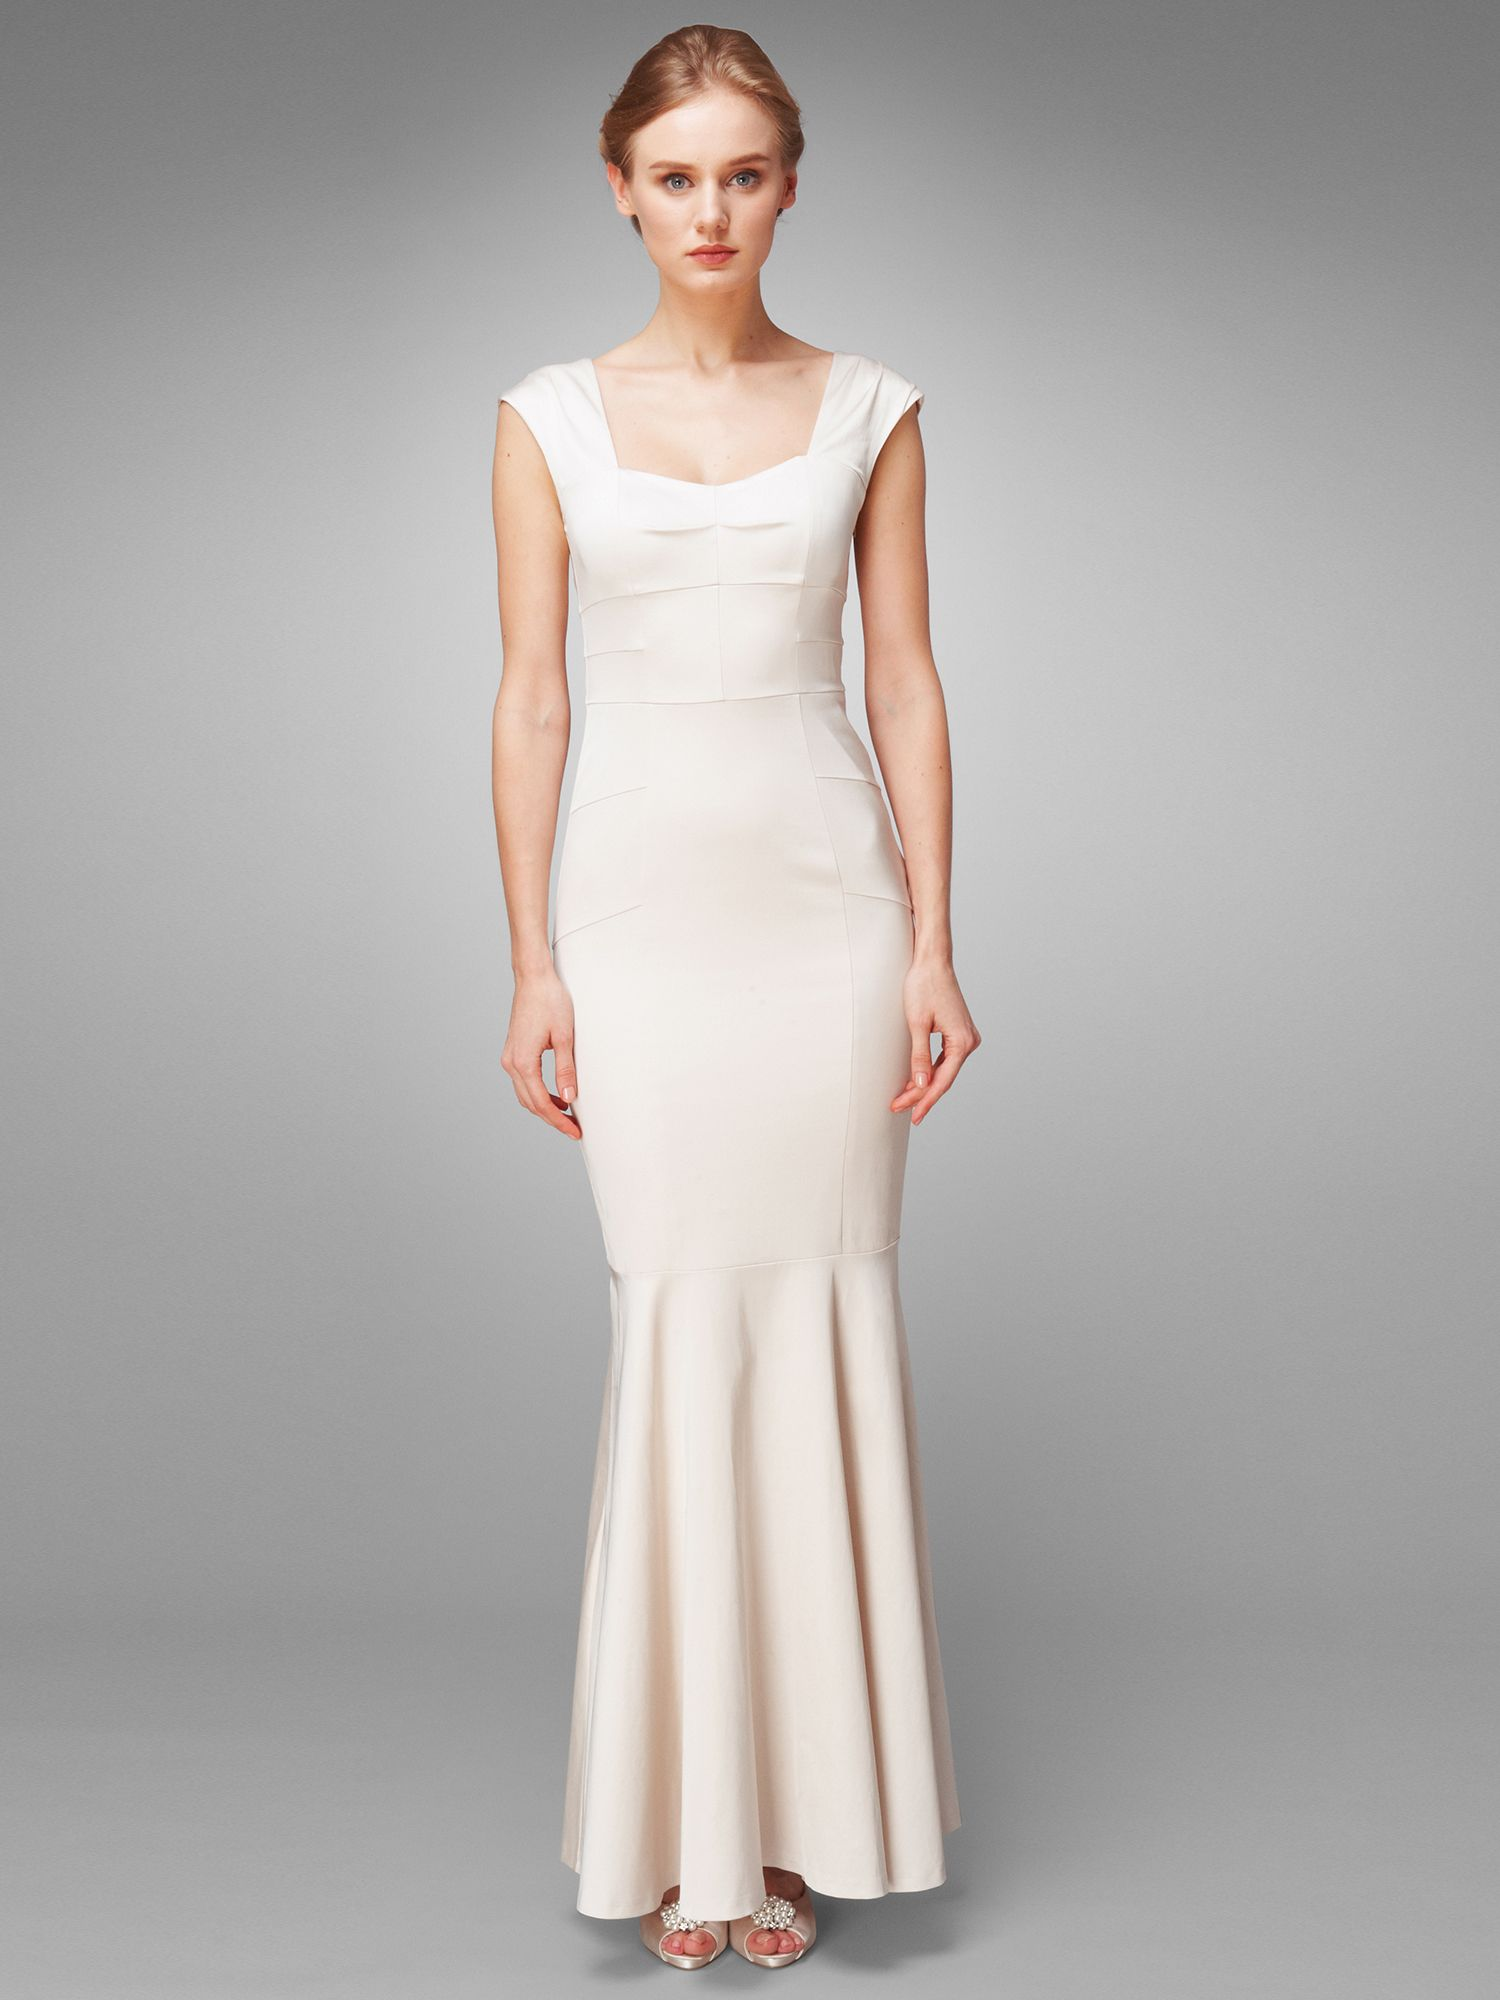 Nicole structured wedding dress